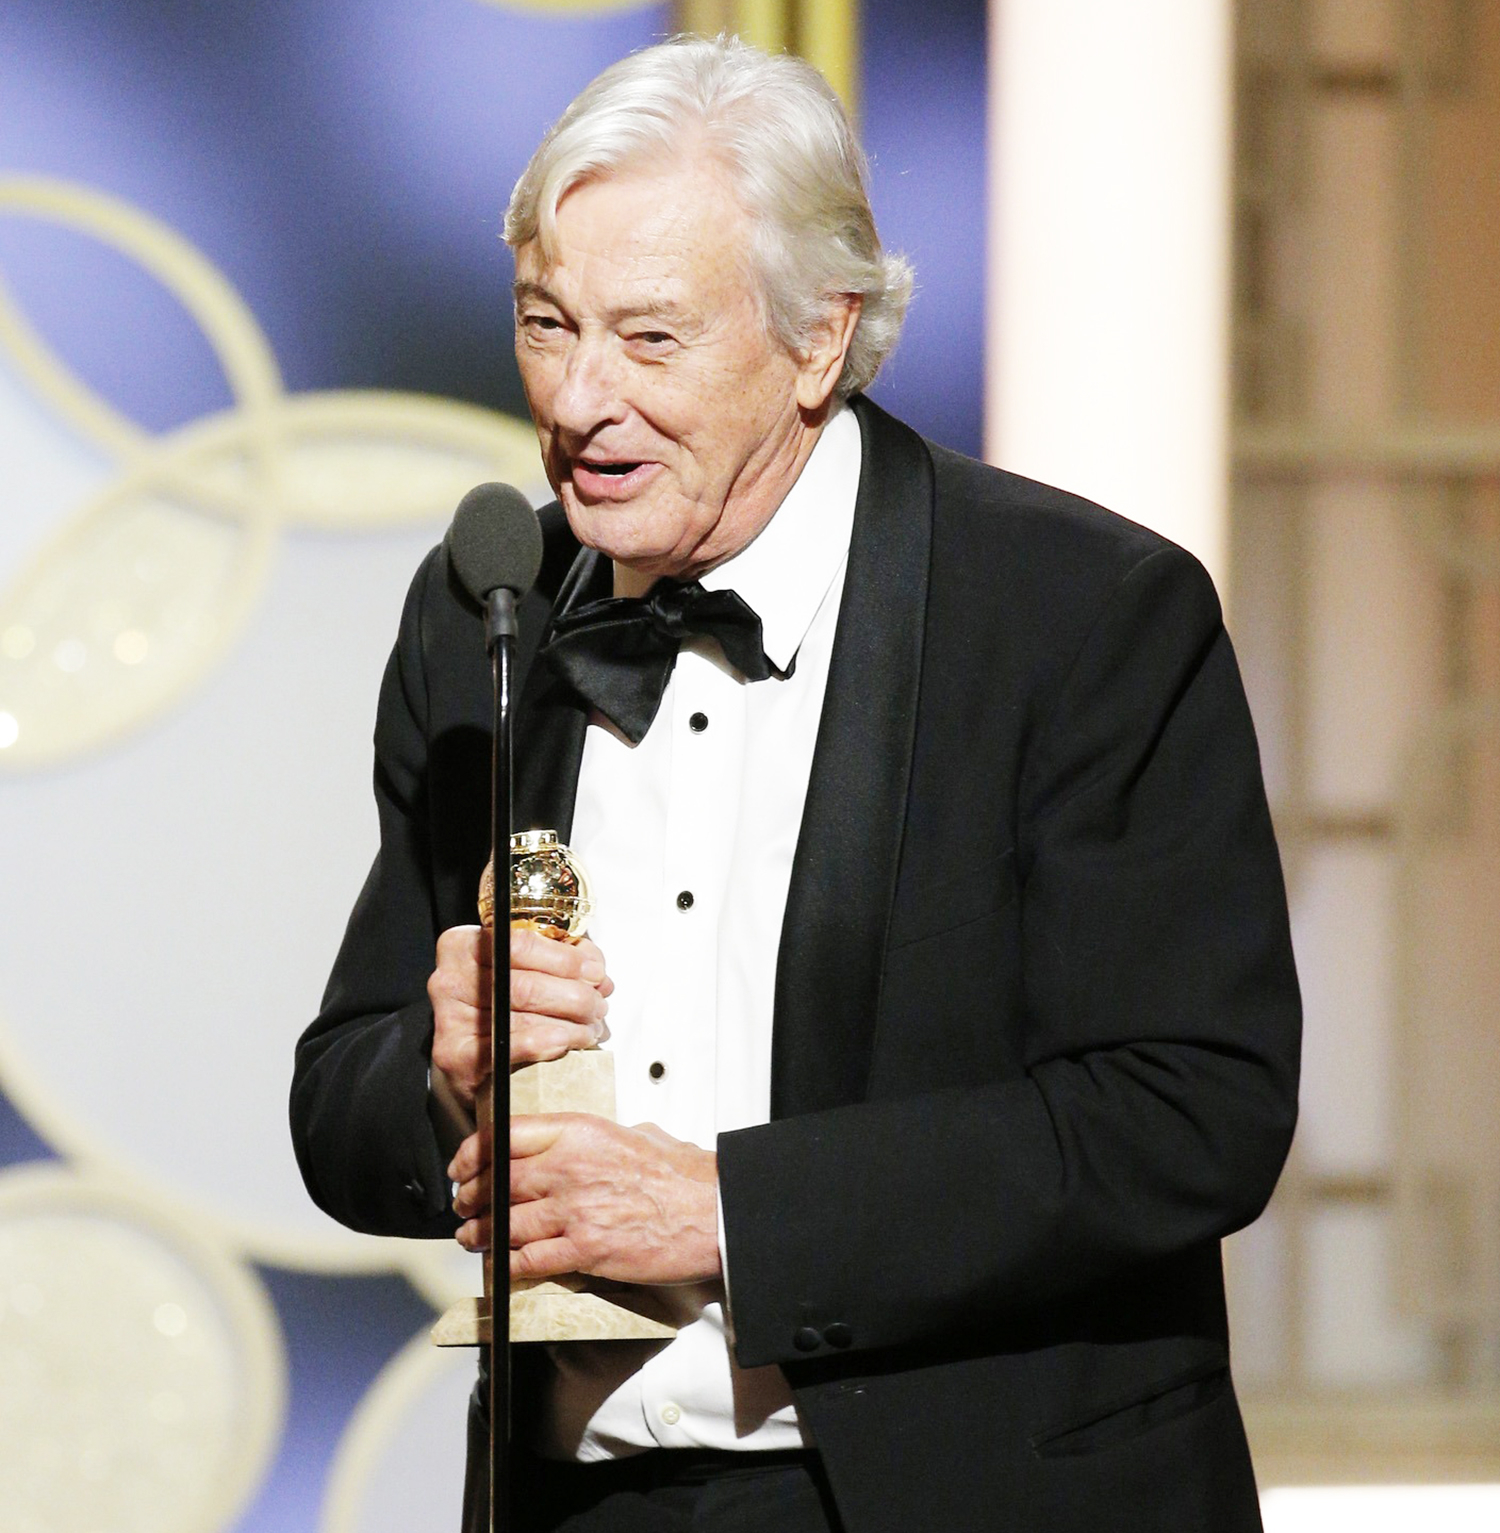 Paul Verhoeven accepts the award for Best Foreign Language Film for